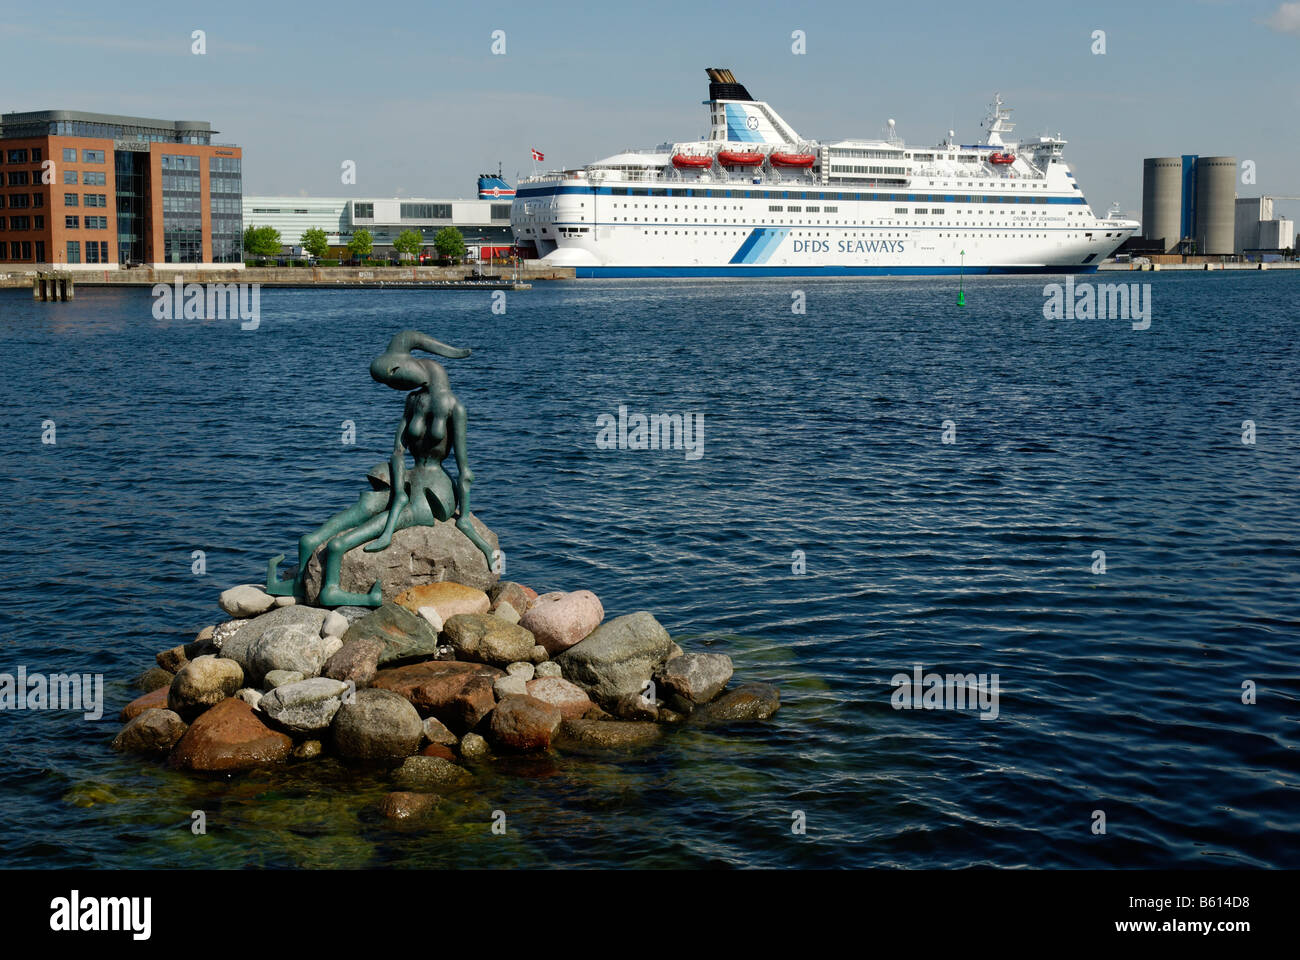 Alternative Little Mermaid and car ferry from Copenhagen to Oslo in the port of Copenhagen, Denmark, Scandinavia, Stock Photo